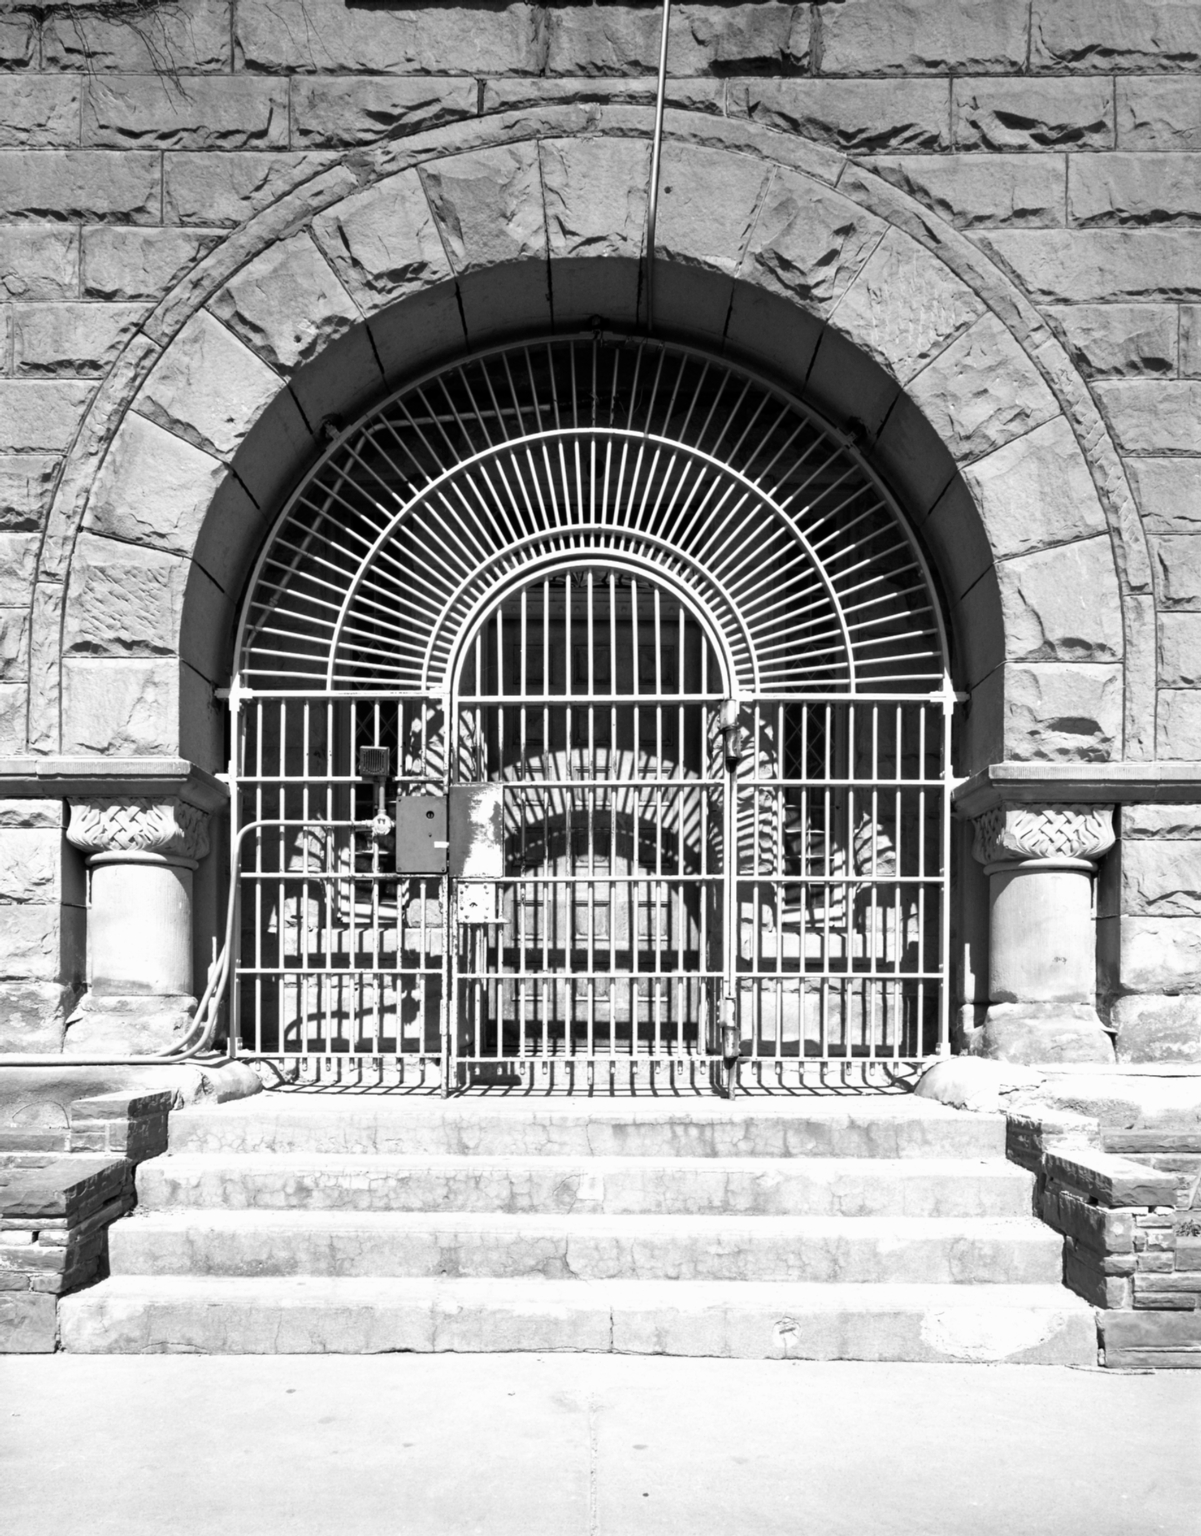 Main Entrance of Old State Prison